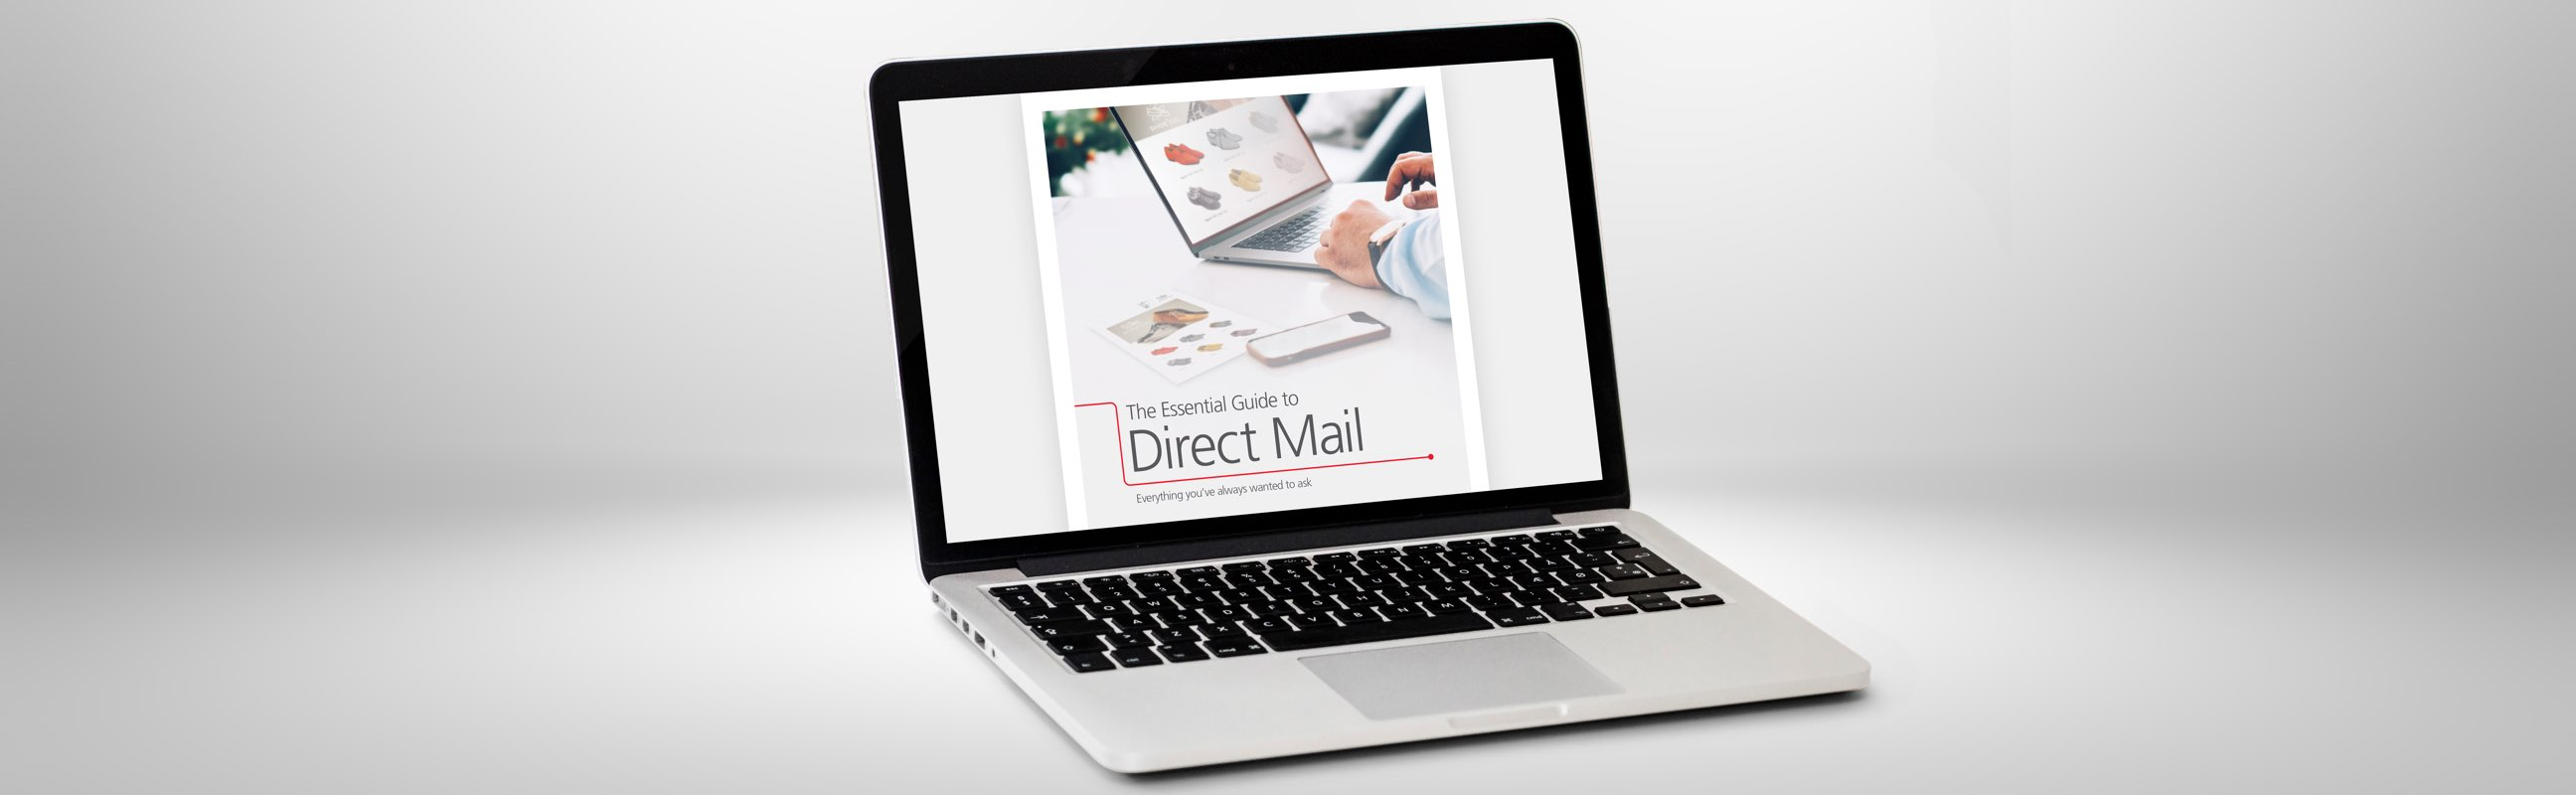 The Essential Guide to Direct Mail